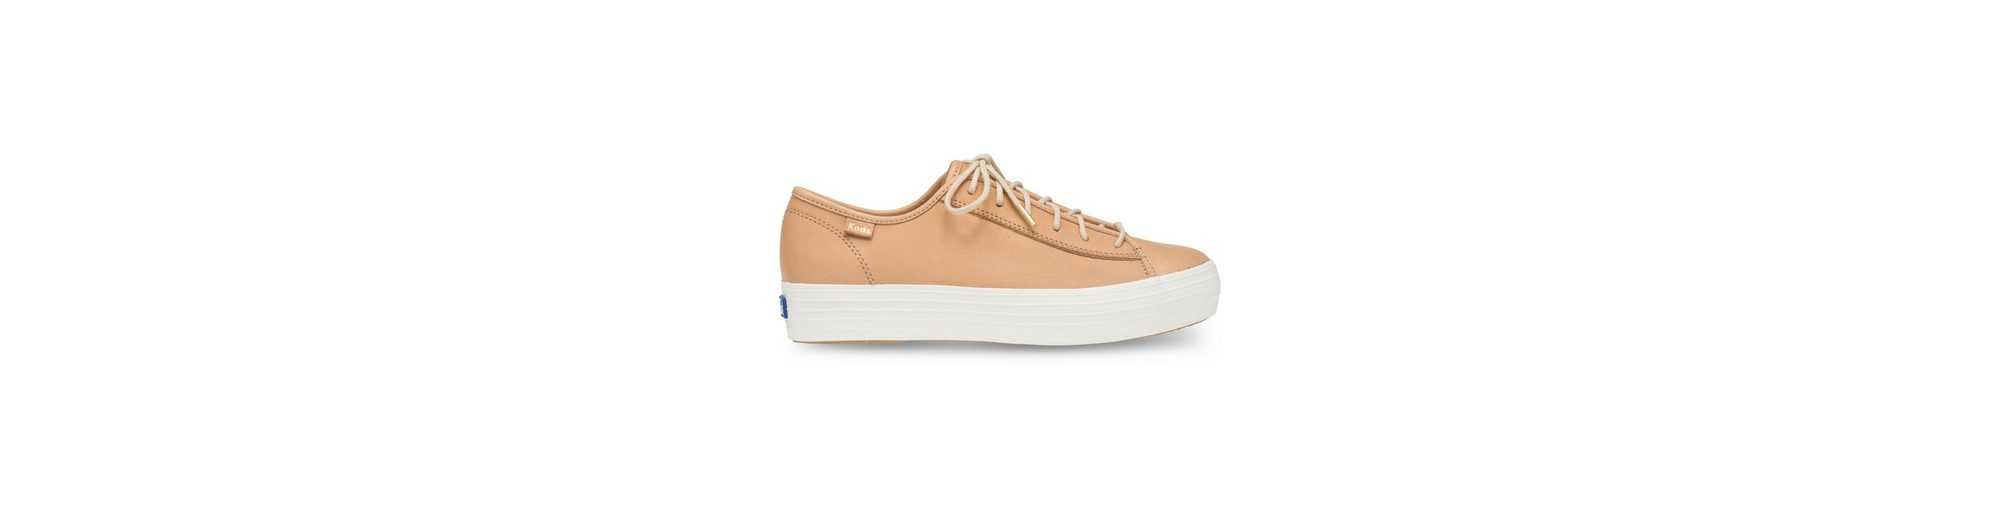 Keds Triple Kick Leather Plateausneaker Auslass Gut Verkaufen nbumEhO5jO